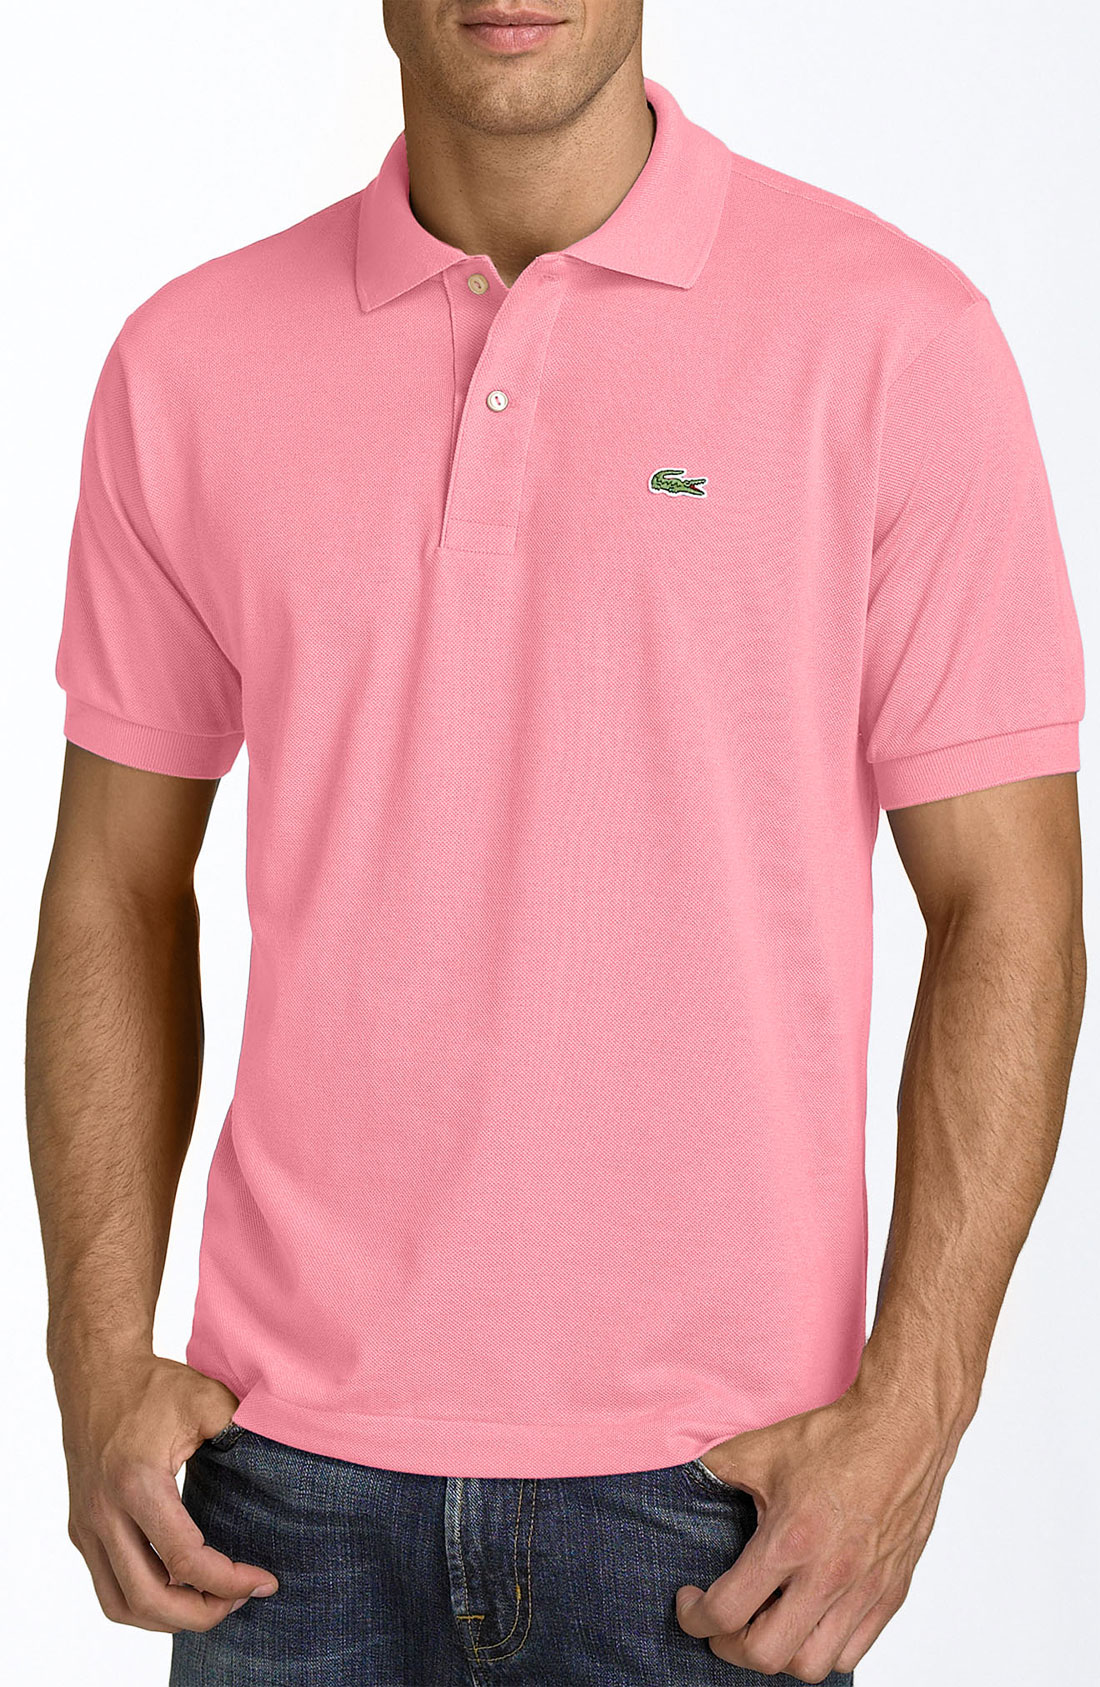 Lacoste piqu polo in pink for men new candy pink lyst for Nordstrom men s dress shirt fit guide